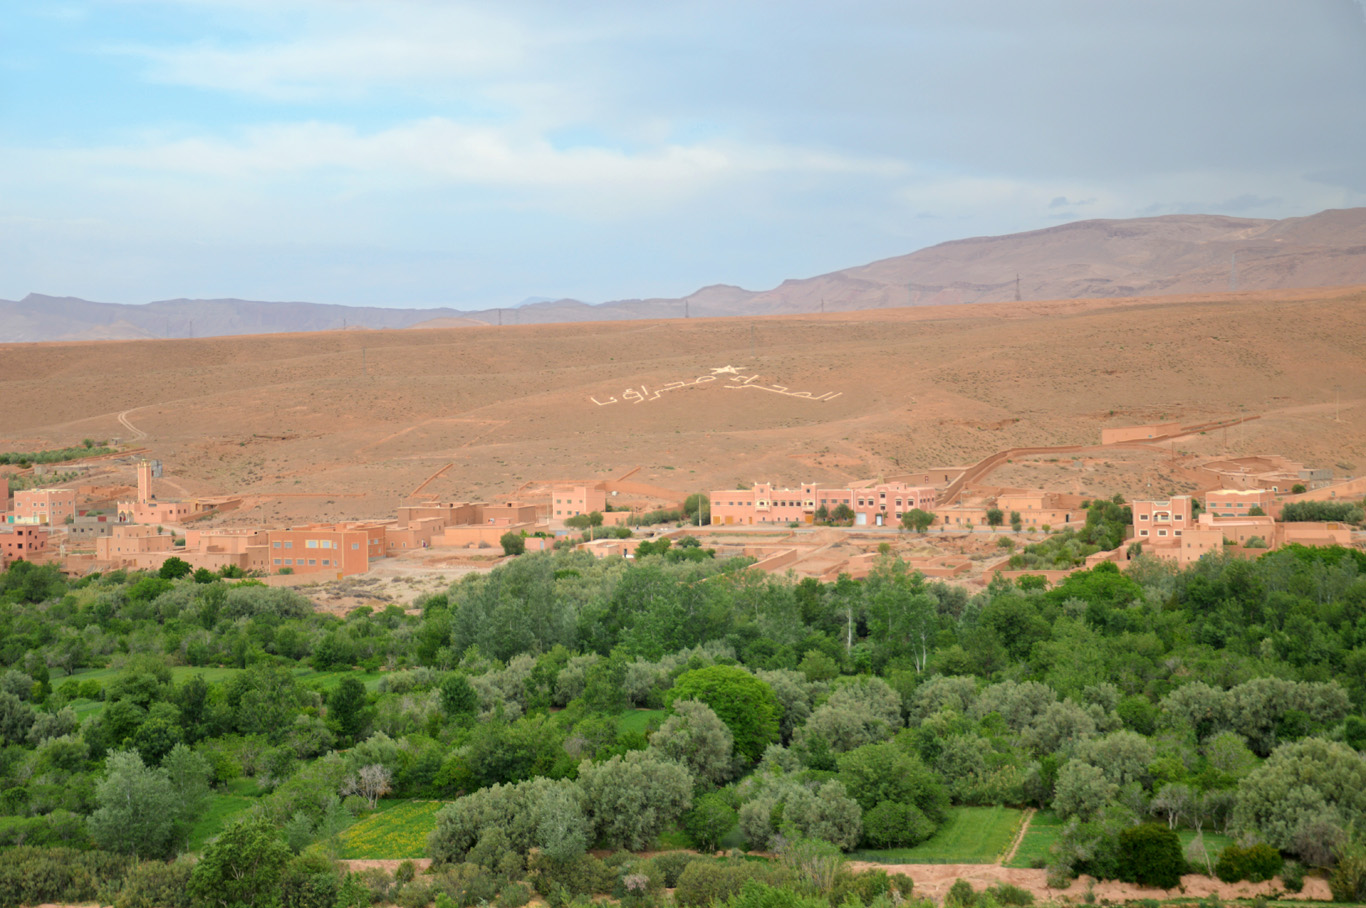 Green trees and red rocks - contrast